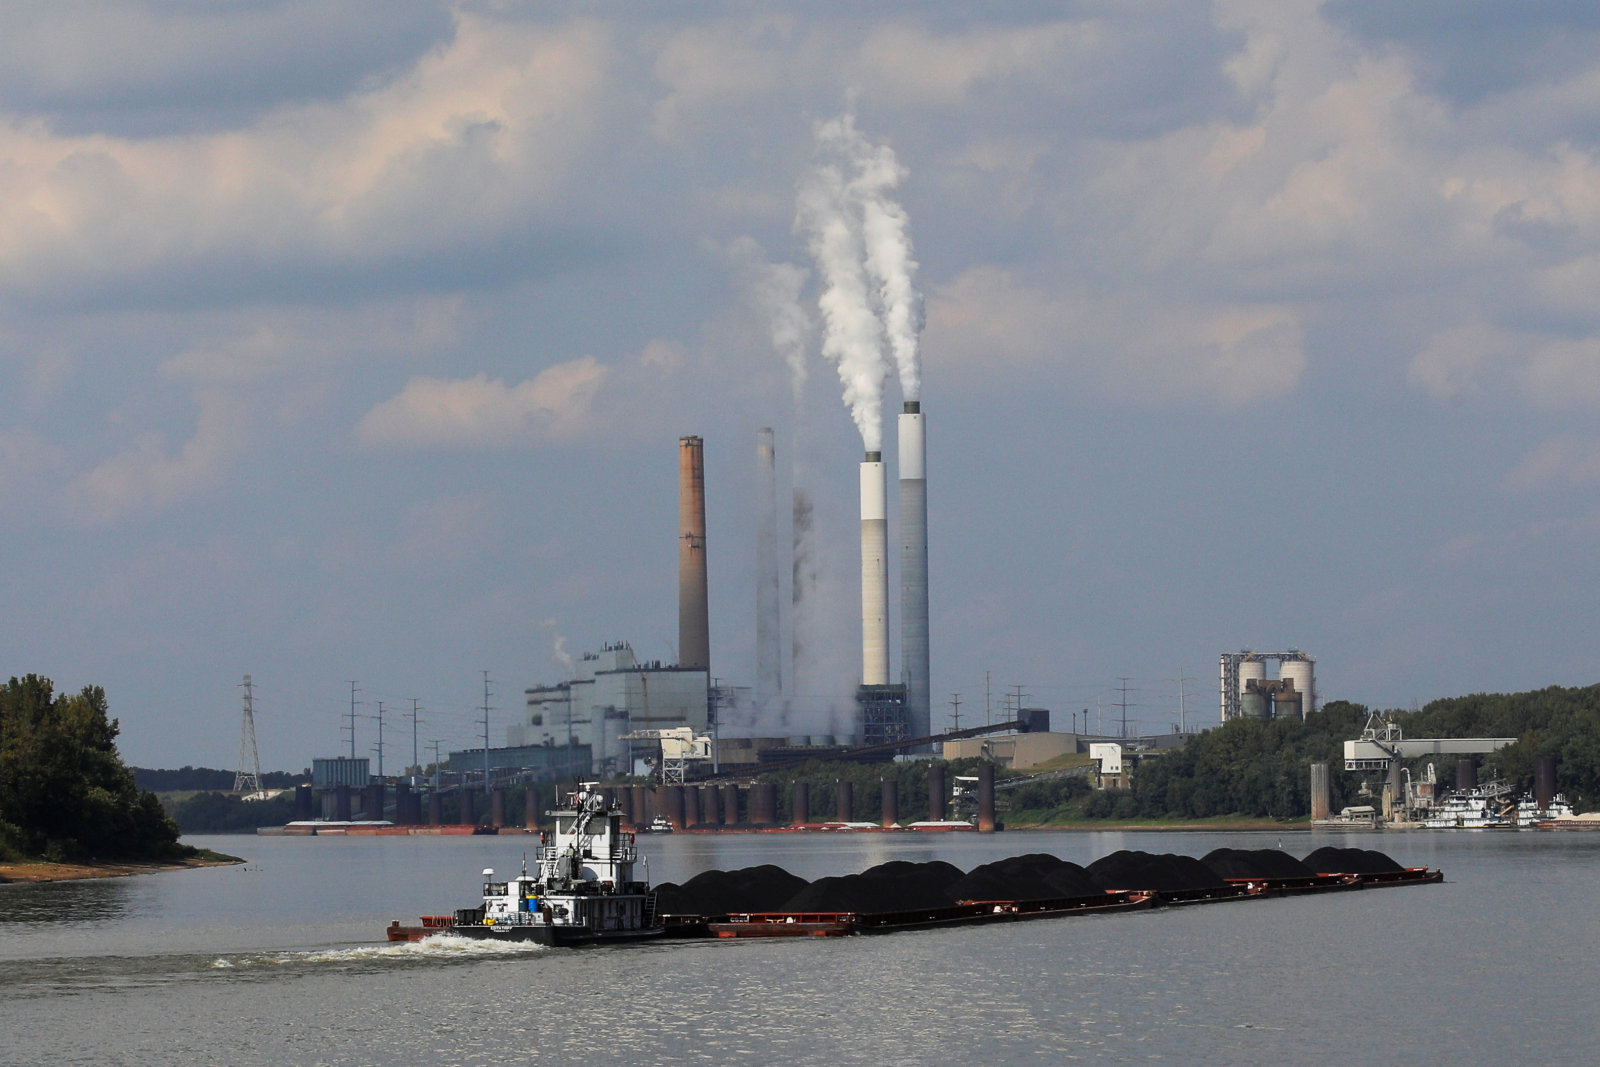 A towboat pushes barges towards the Mill Creek Station power plant on the Ohio River in Louisville, Kentucky, U.S., September 15, 2017.  According to the company, Louisville Gas and Electric, Mill Creek Station is a coal-fired power plant producing over 1400 megawatts of power and burning approximately 4.8 million tons of coal per year.  Photograph taken at N38°01.086' W85°55.598'.  Photograph taken September 15, 2017.   REUTERS/Brian Snyder